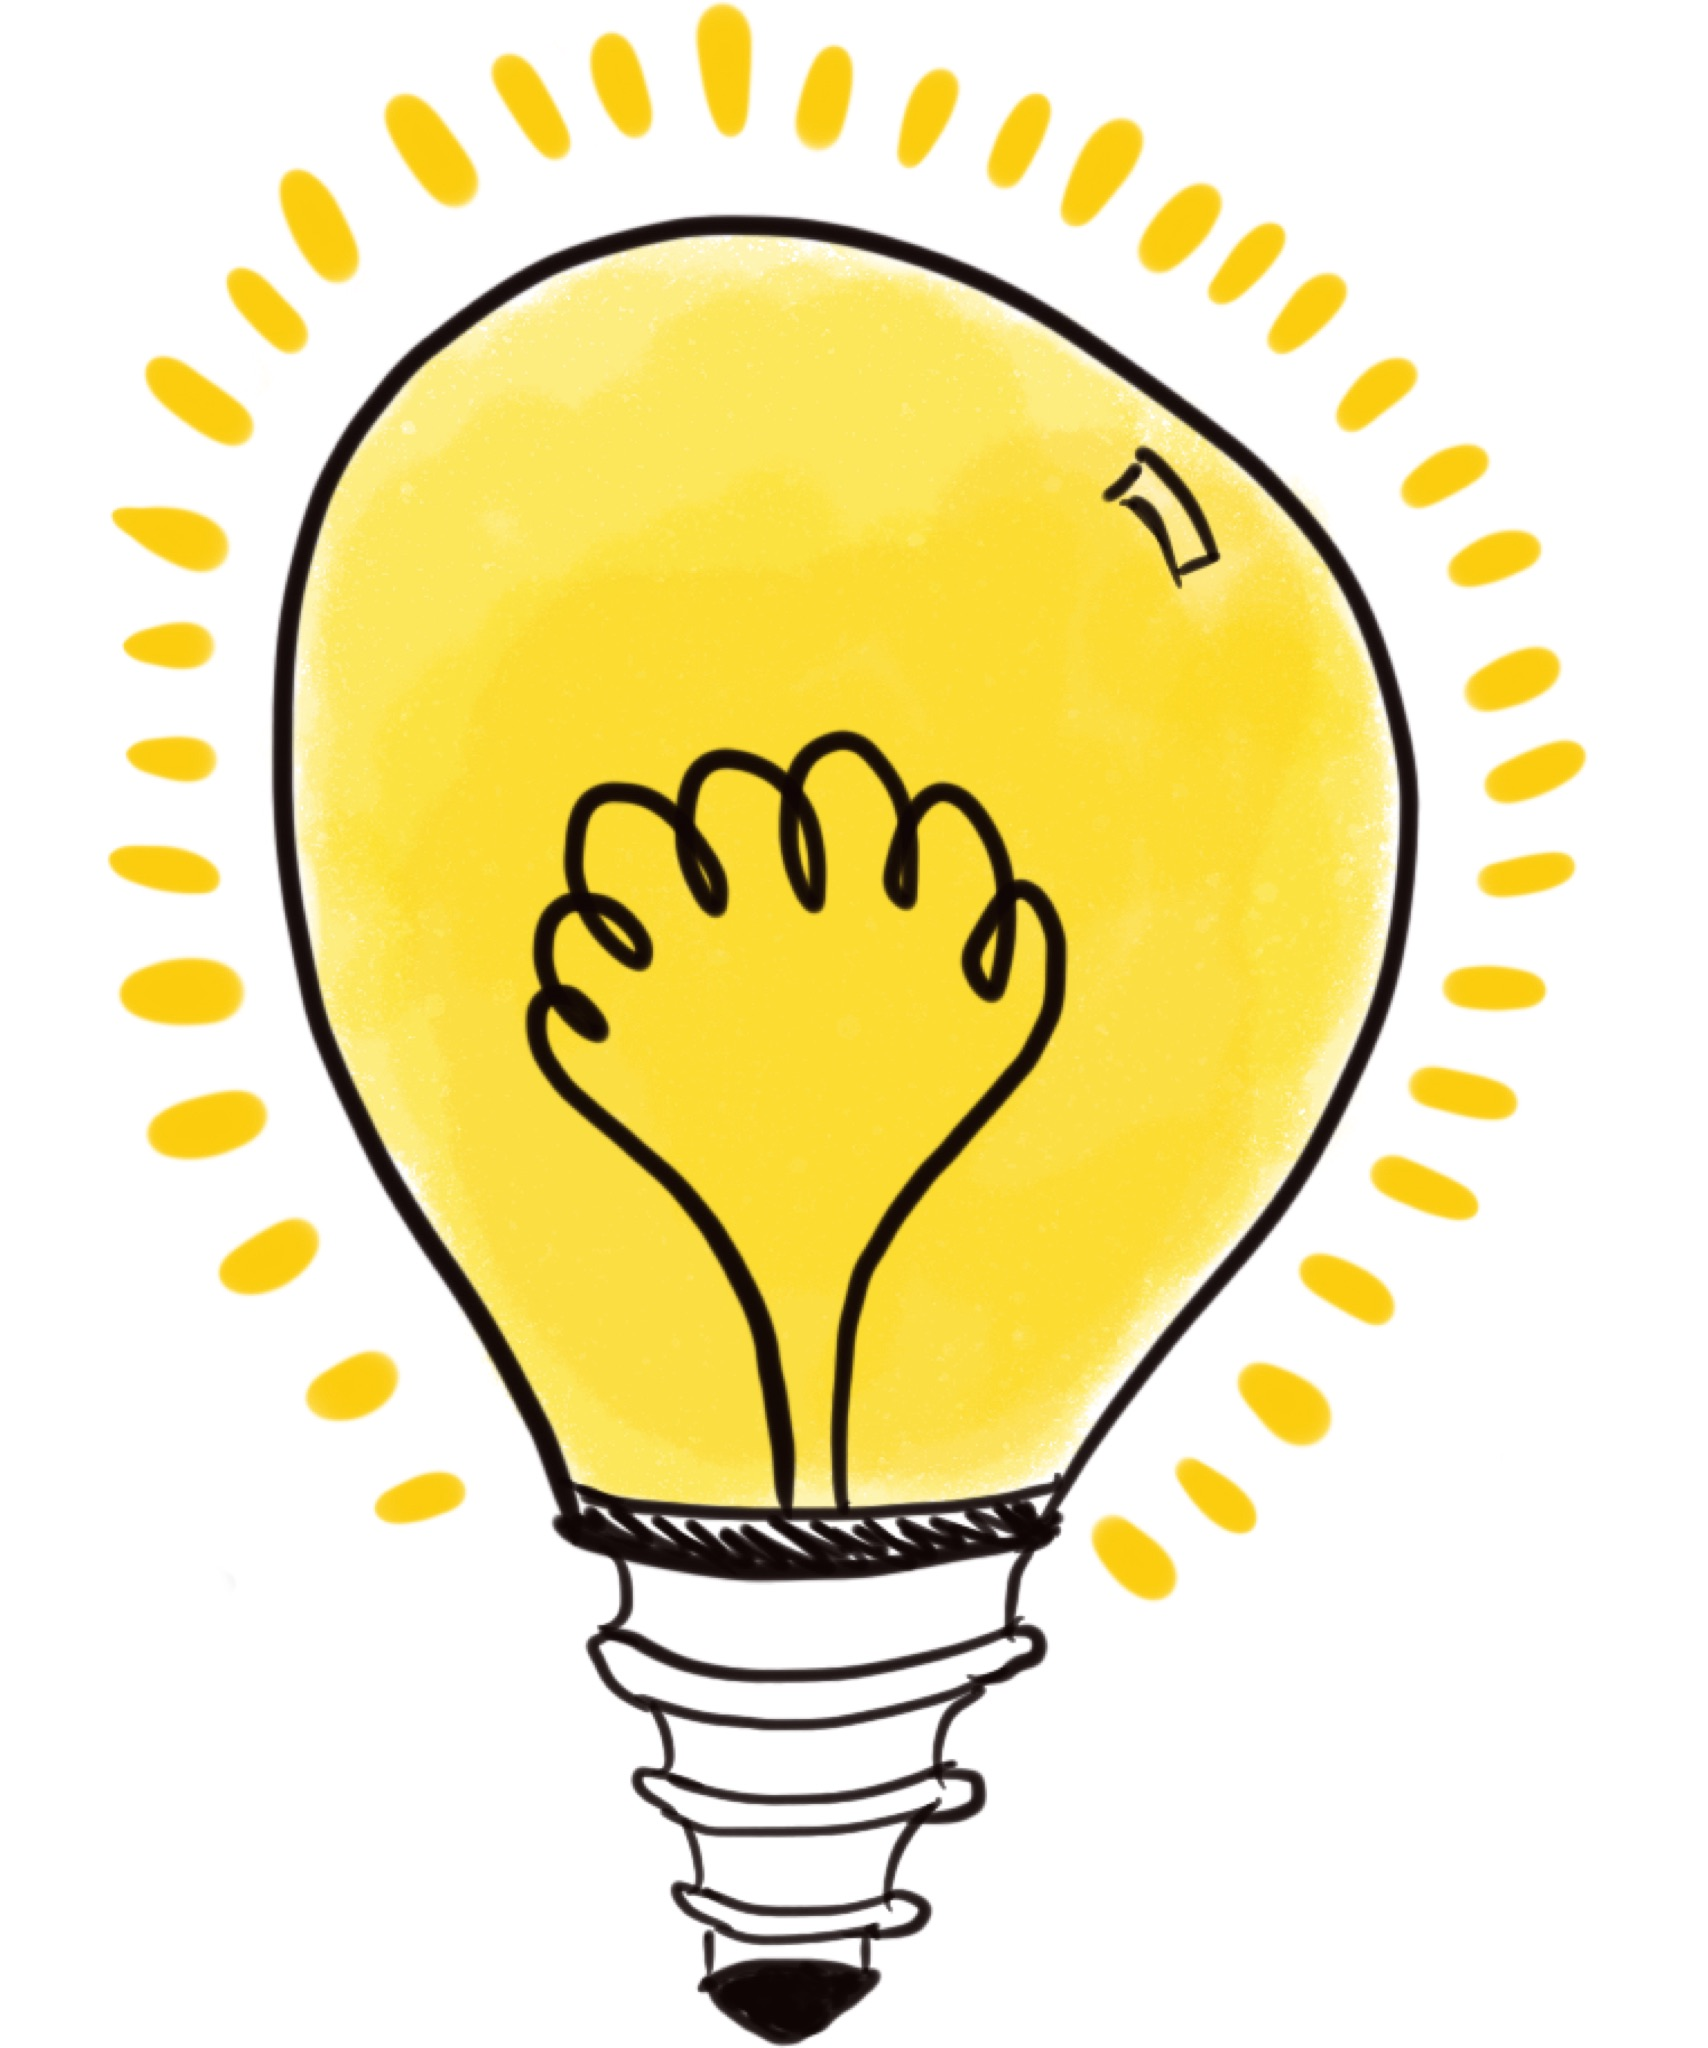 Icon of a bulb representing reflections.